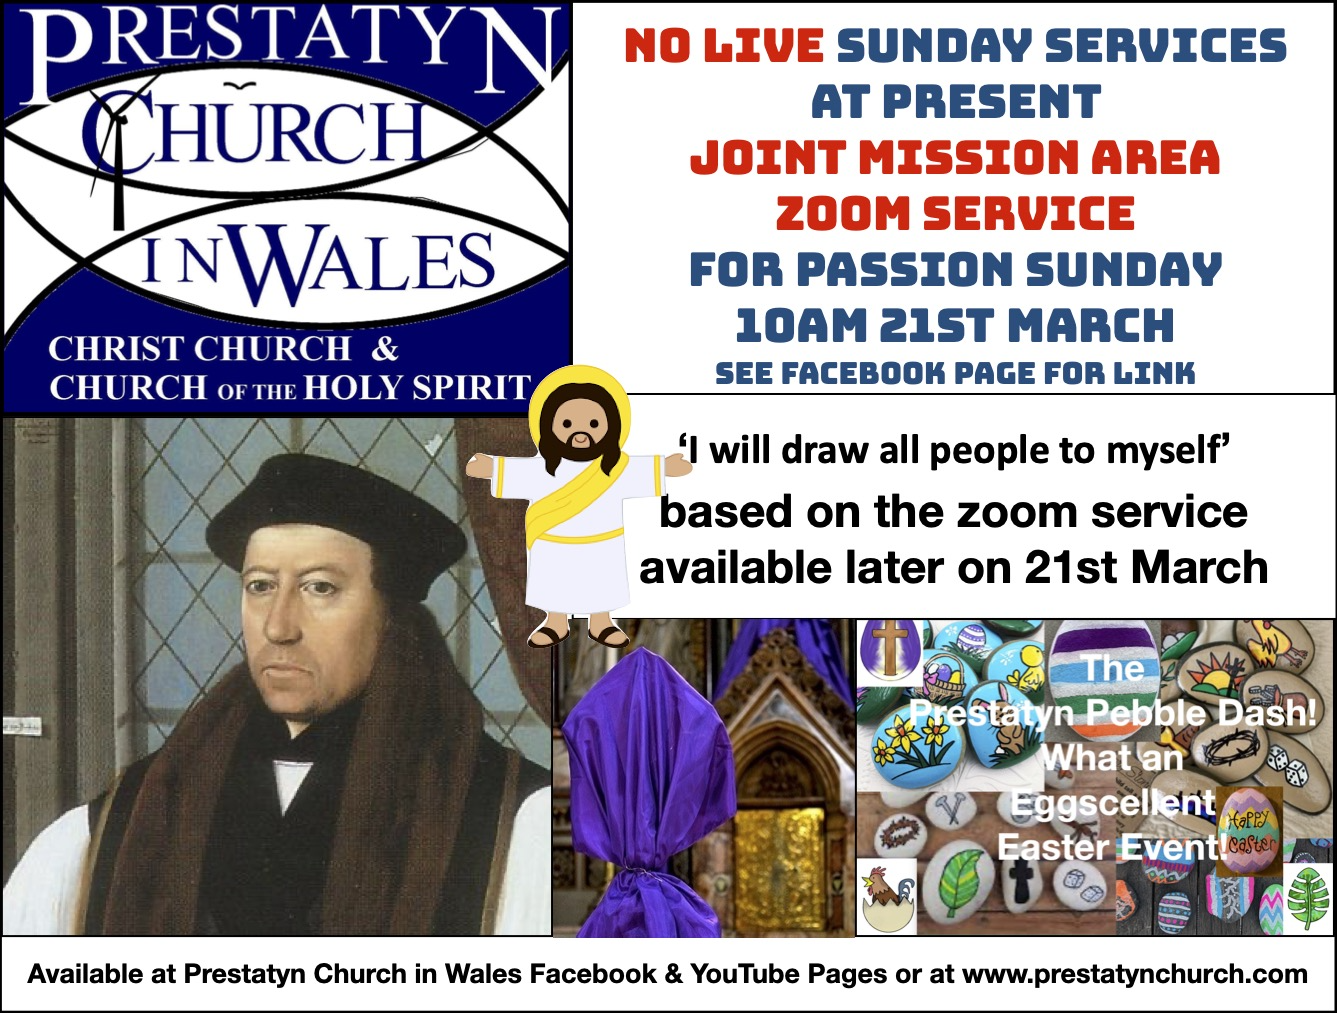 "Contains images: Text Reads: ""NO LIVE SUNDAY SERVICES AT PRESENT. JOINT MISSION AREA ZOOM SERVICE FOR PASSION SUNDAY 21st March 2021 at 10:00 AM. See facebook page for link.  'I will draw all people to myself.' based on the zoom serviceavailable later on 21st March."" Footer text reads: Available at Prestatyn Church In Wales Facebook & Youtube Pages or at www.prestatynchurch.com."""